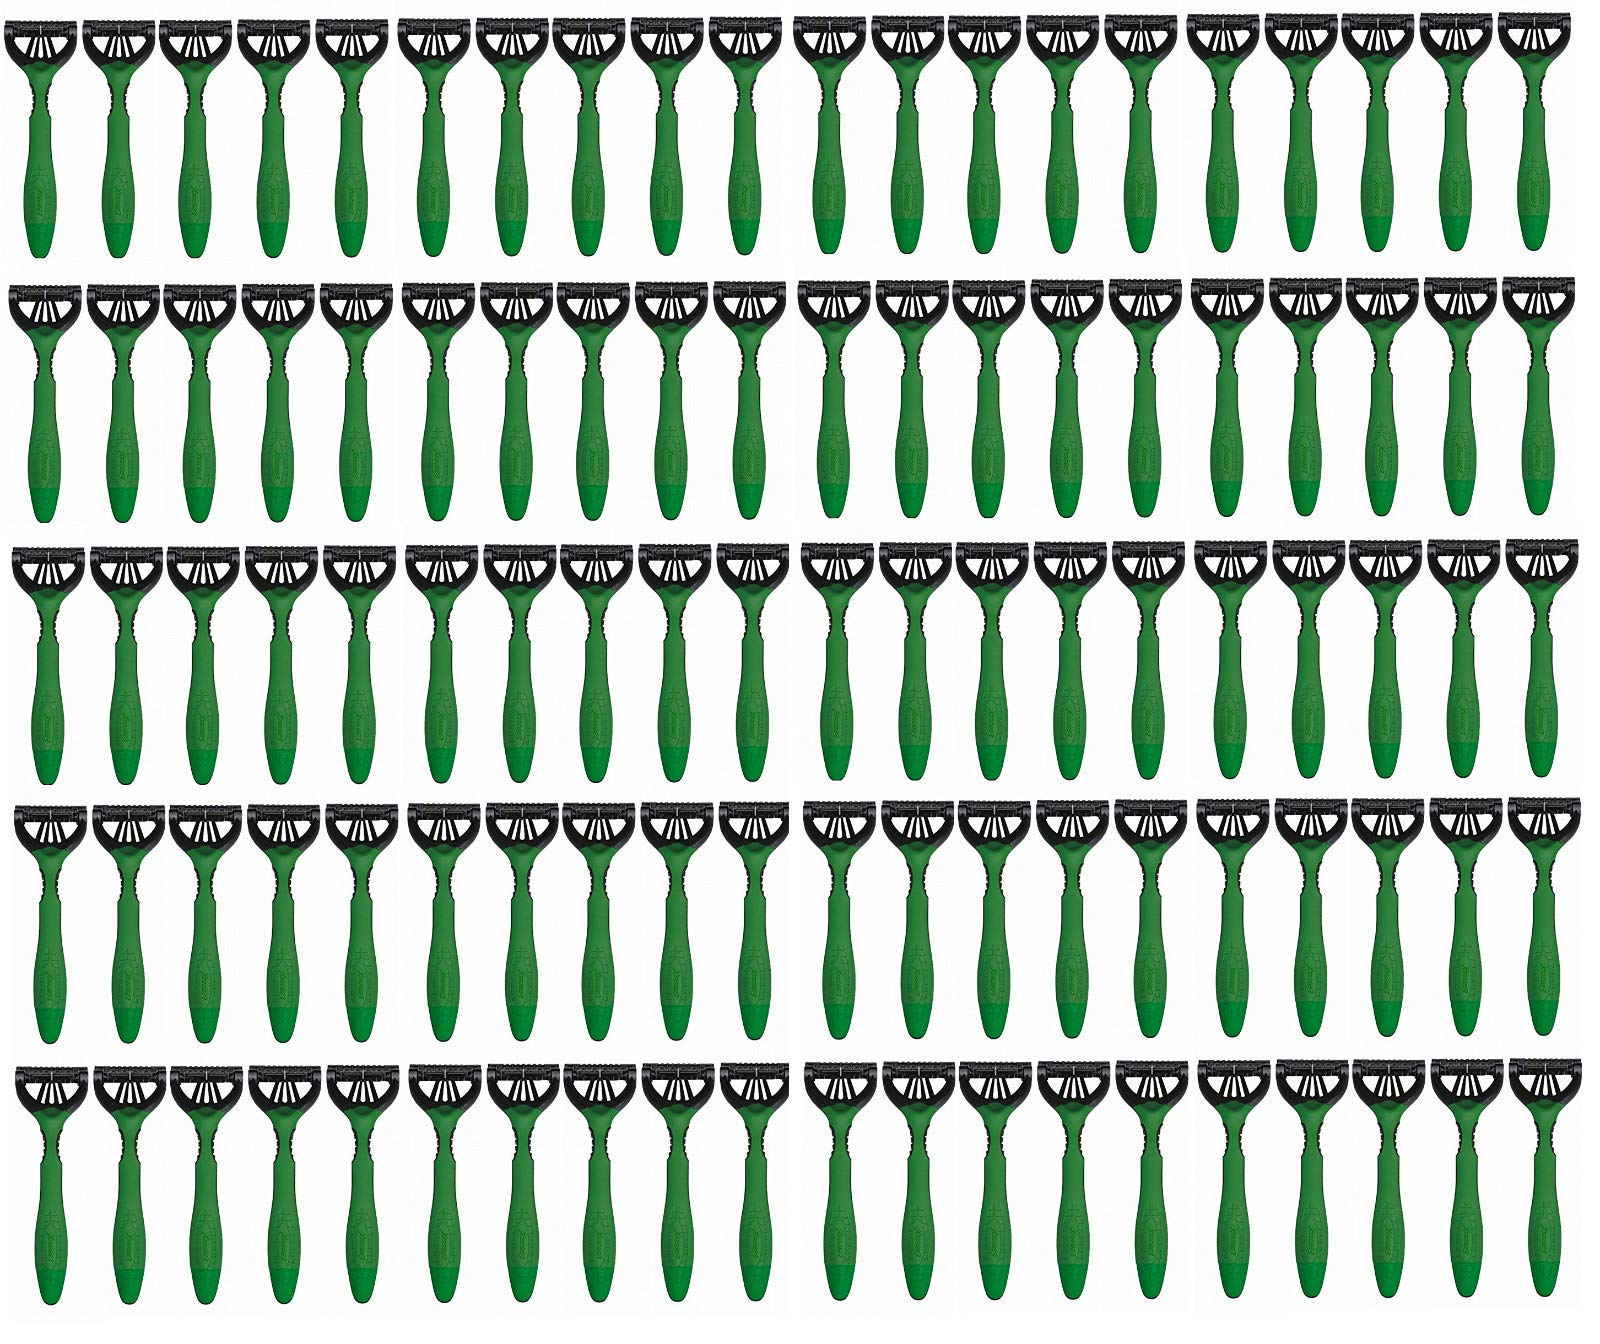 100 (Pack) - Schick Xtreme 3 Disposable Razors Sensitive Aloe Green Bulk